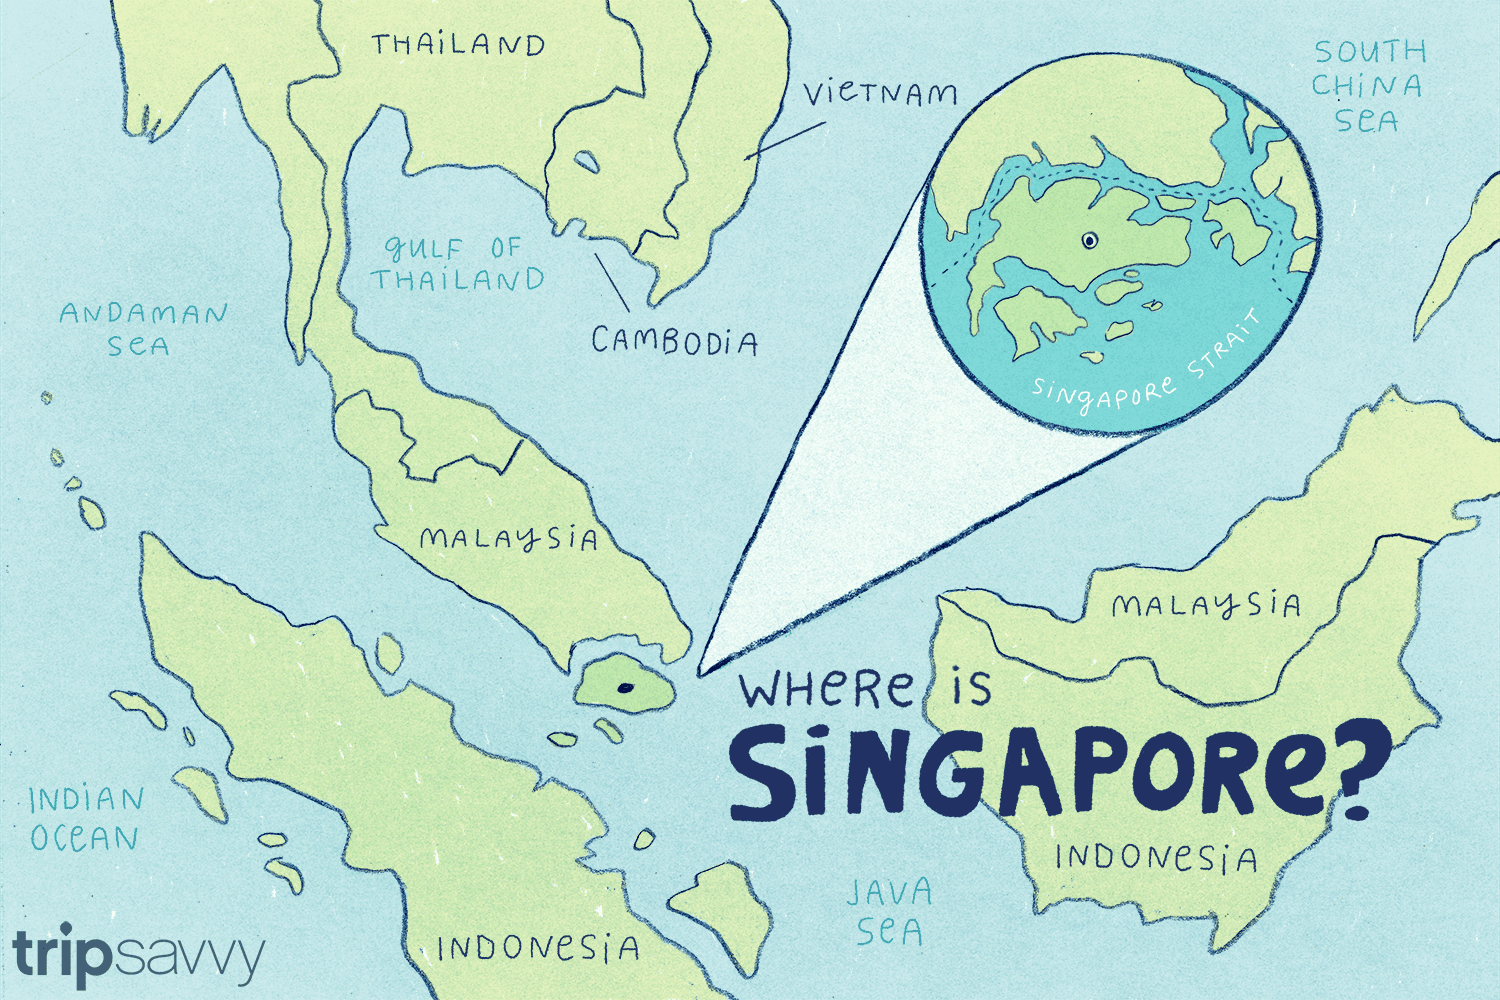 Singapore On Map Where Is Singapore: Is It a City, Island, or Country? Singapore On Map